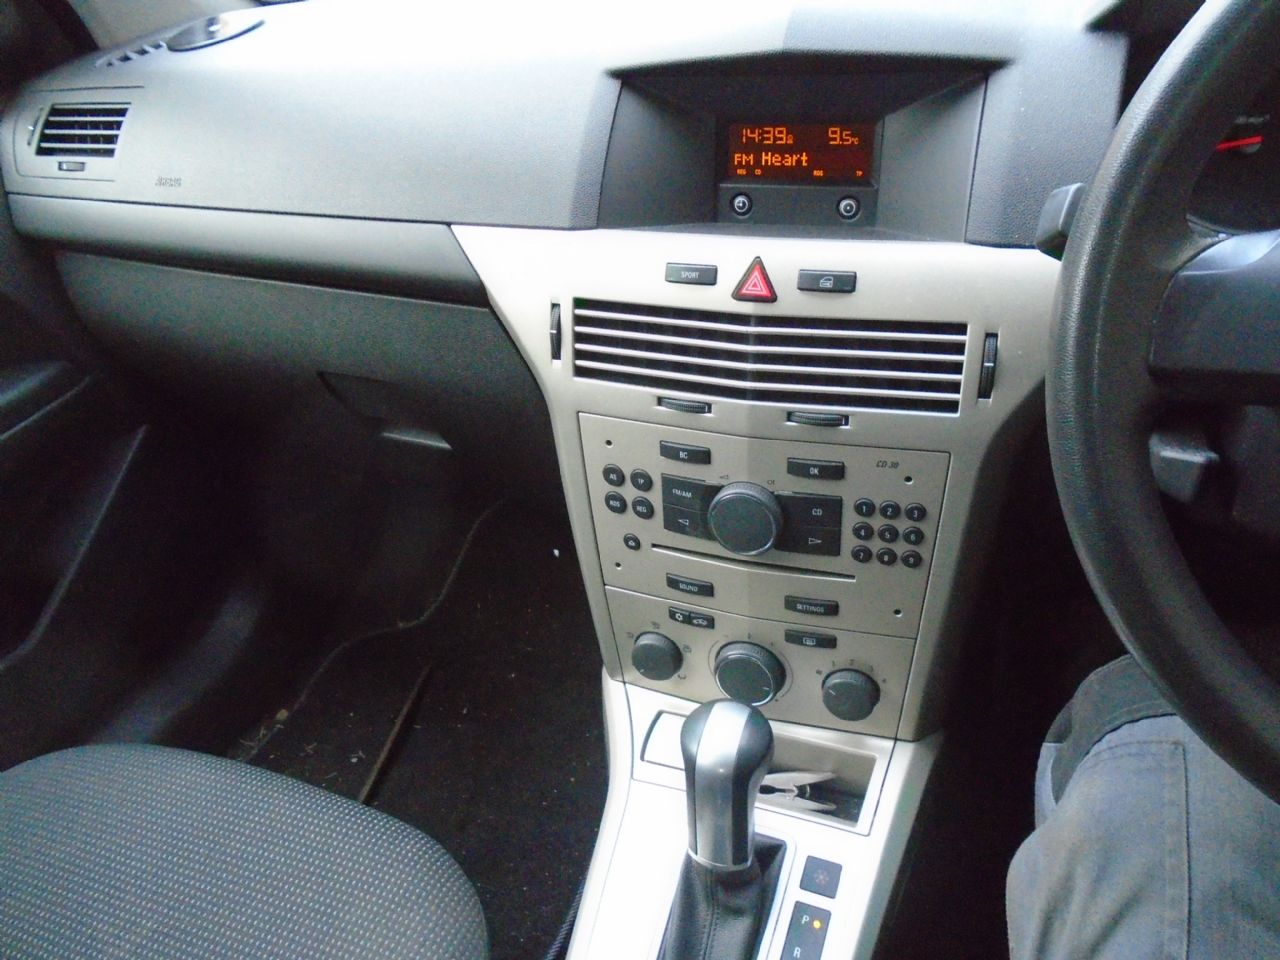 VAUXHALL Astra Life 1.8i 16v auto (a/c) VIP - Picture 4